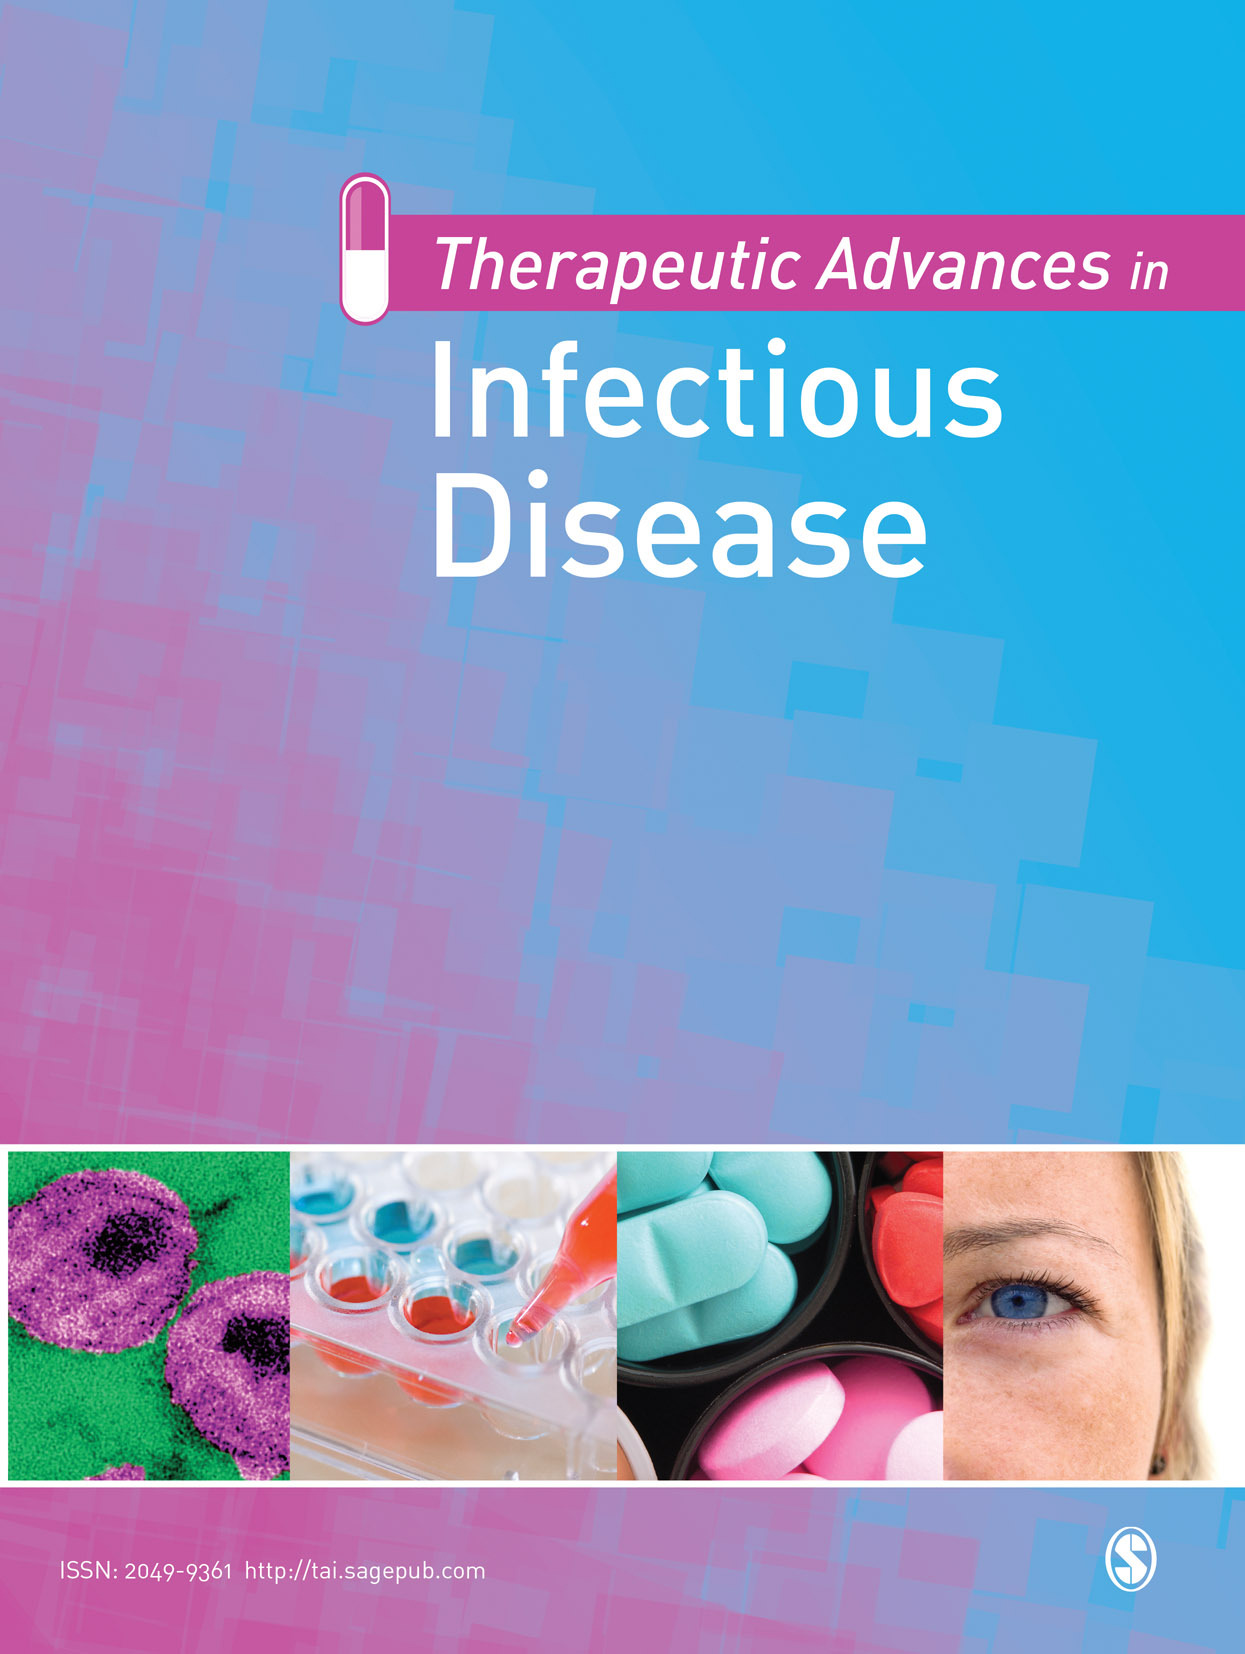 Therapeutic Advances in Infectious Disease